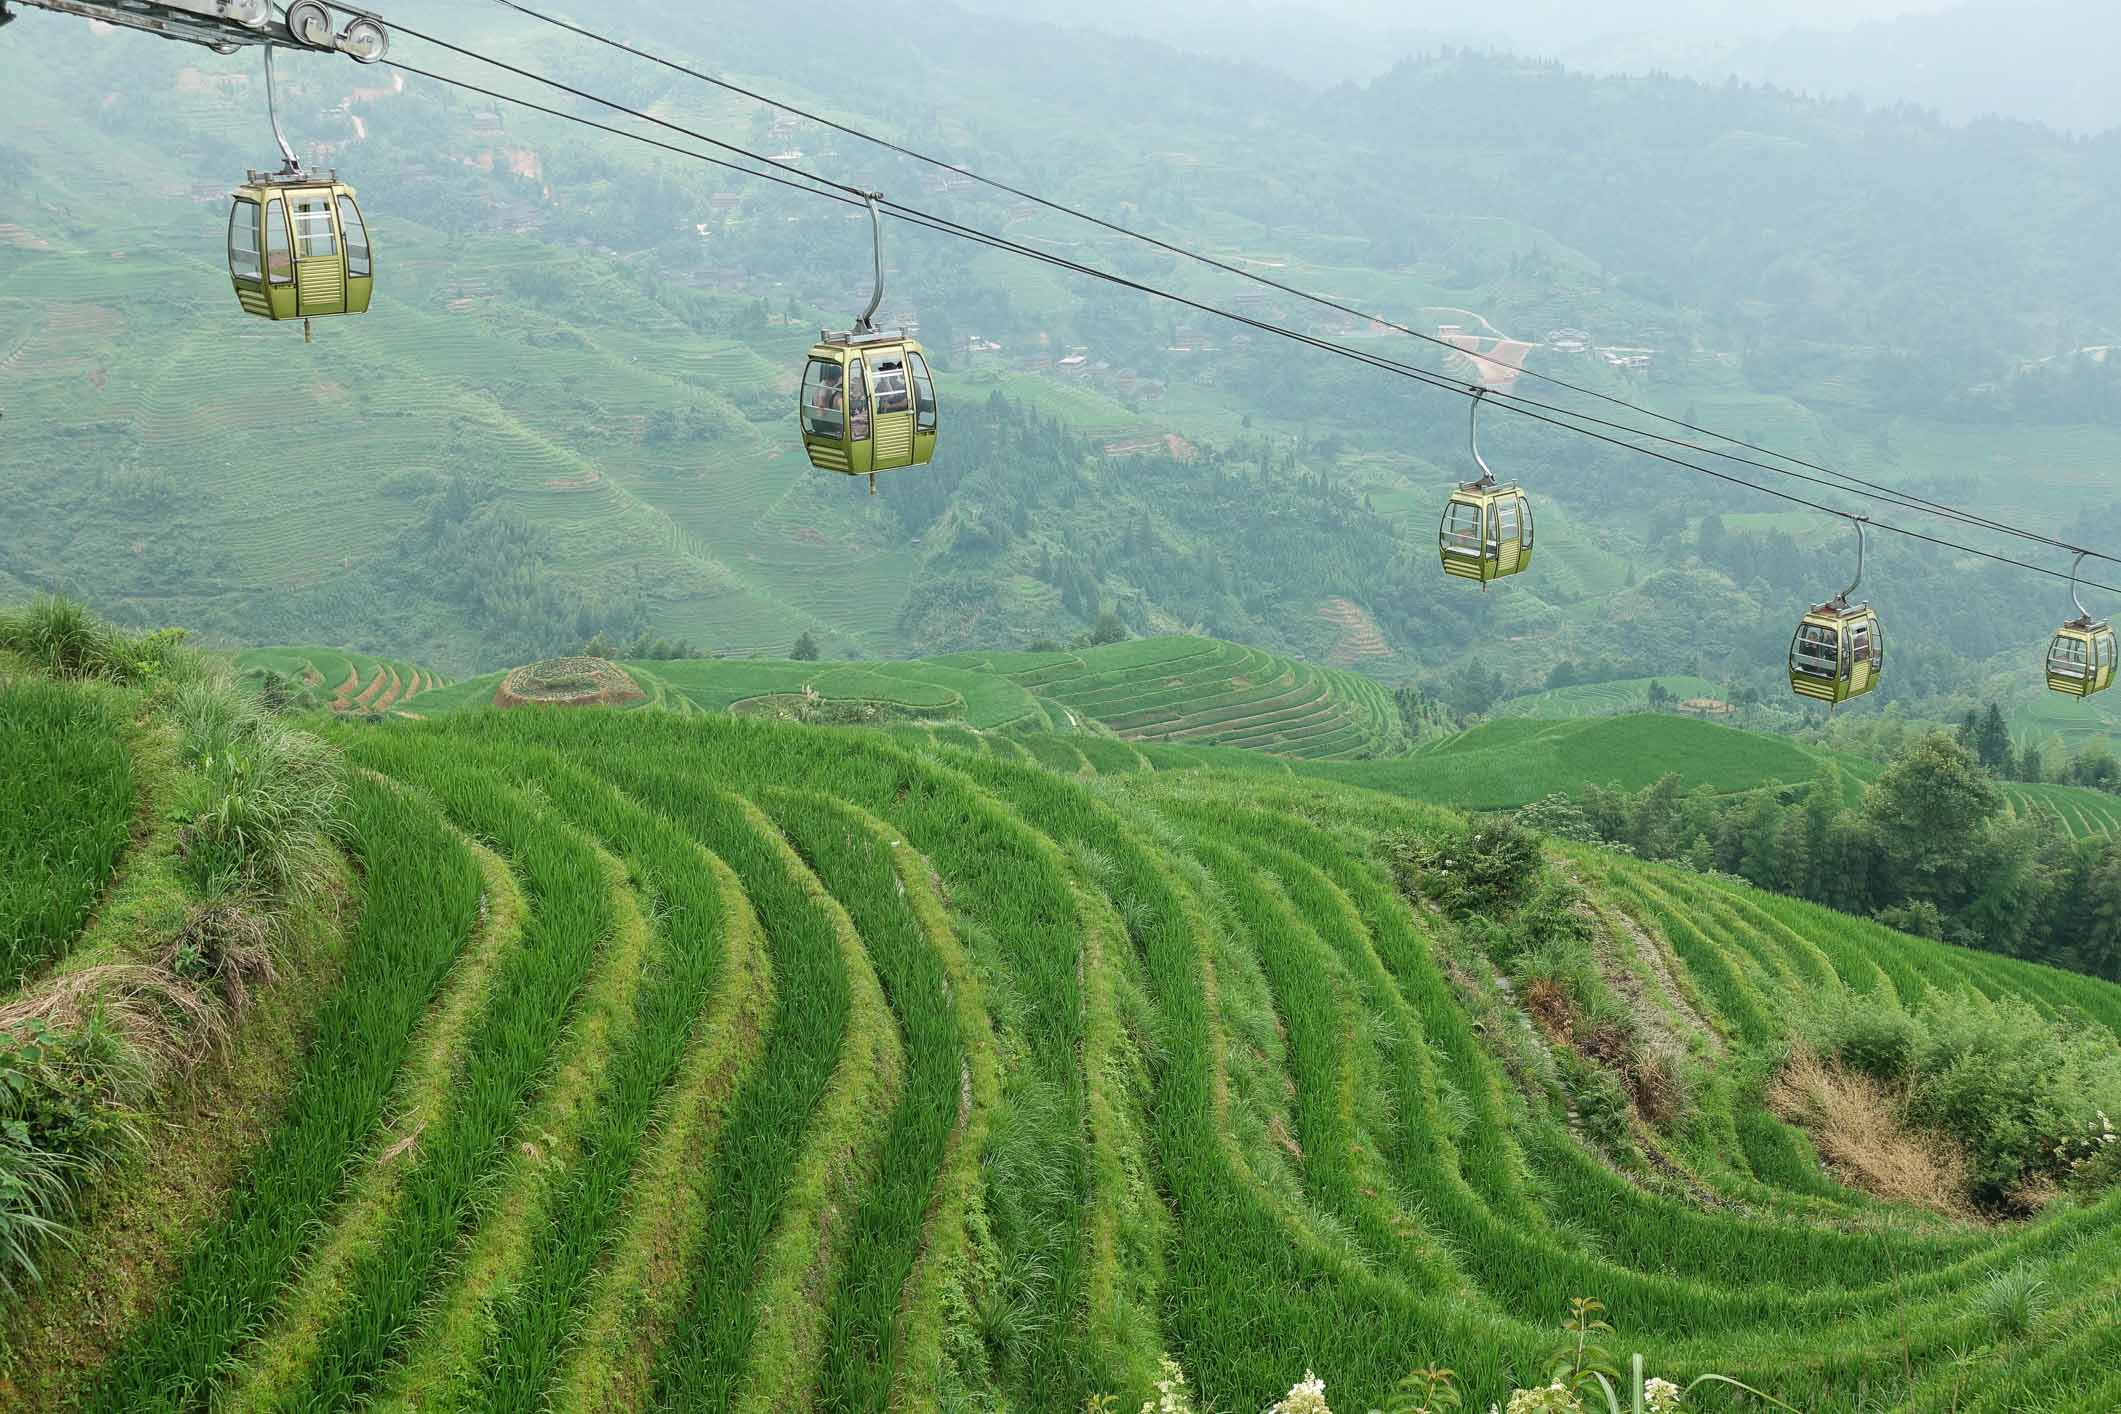 Gondola to take us up to the rice fields